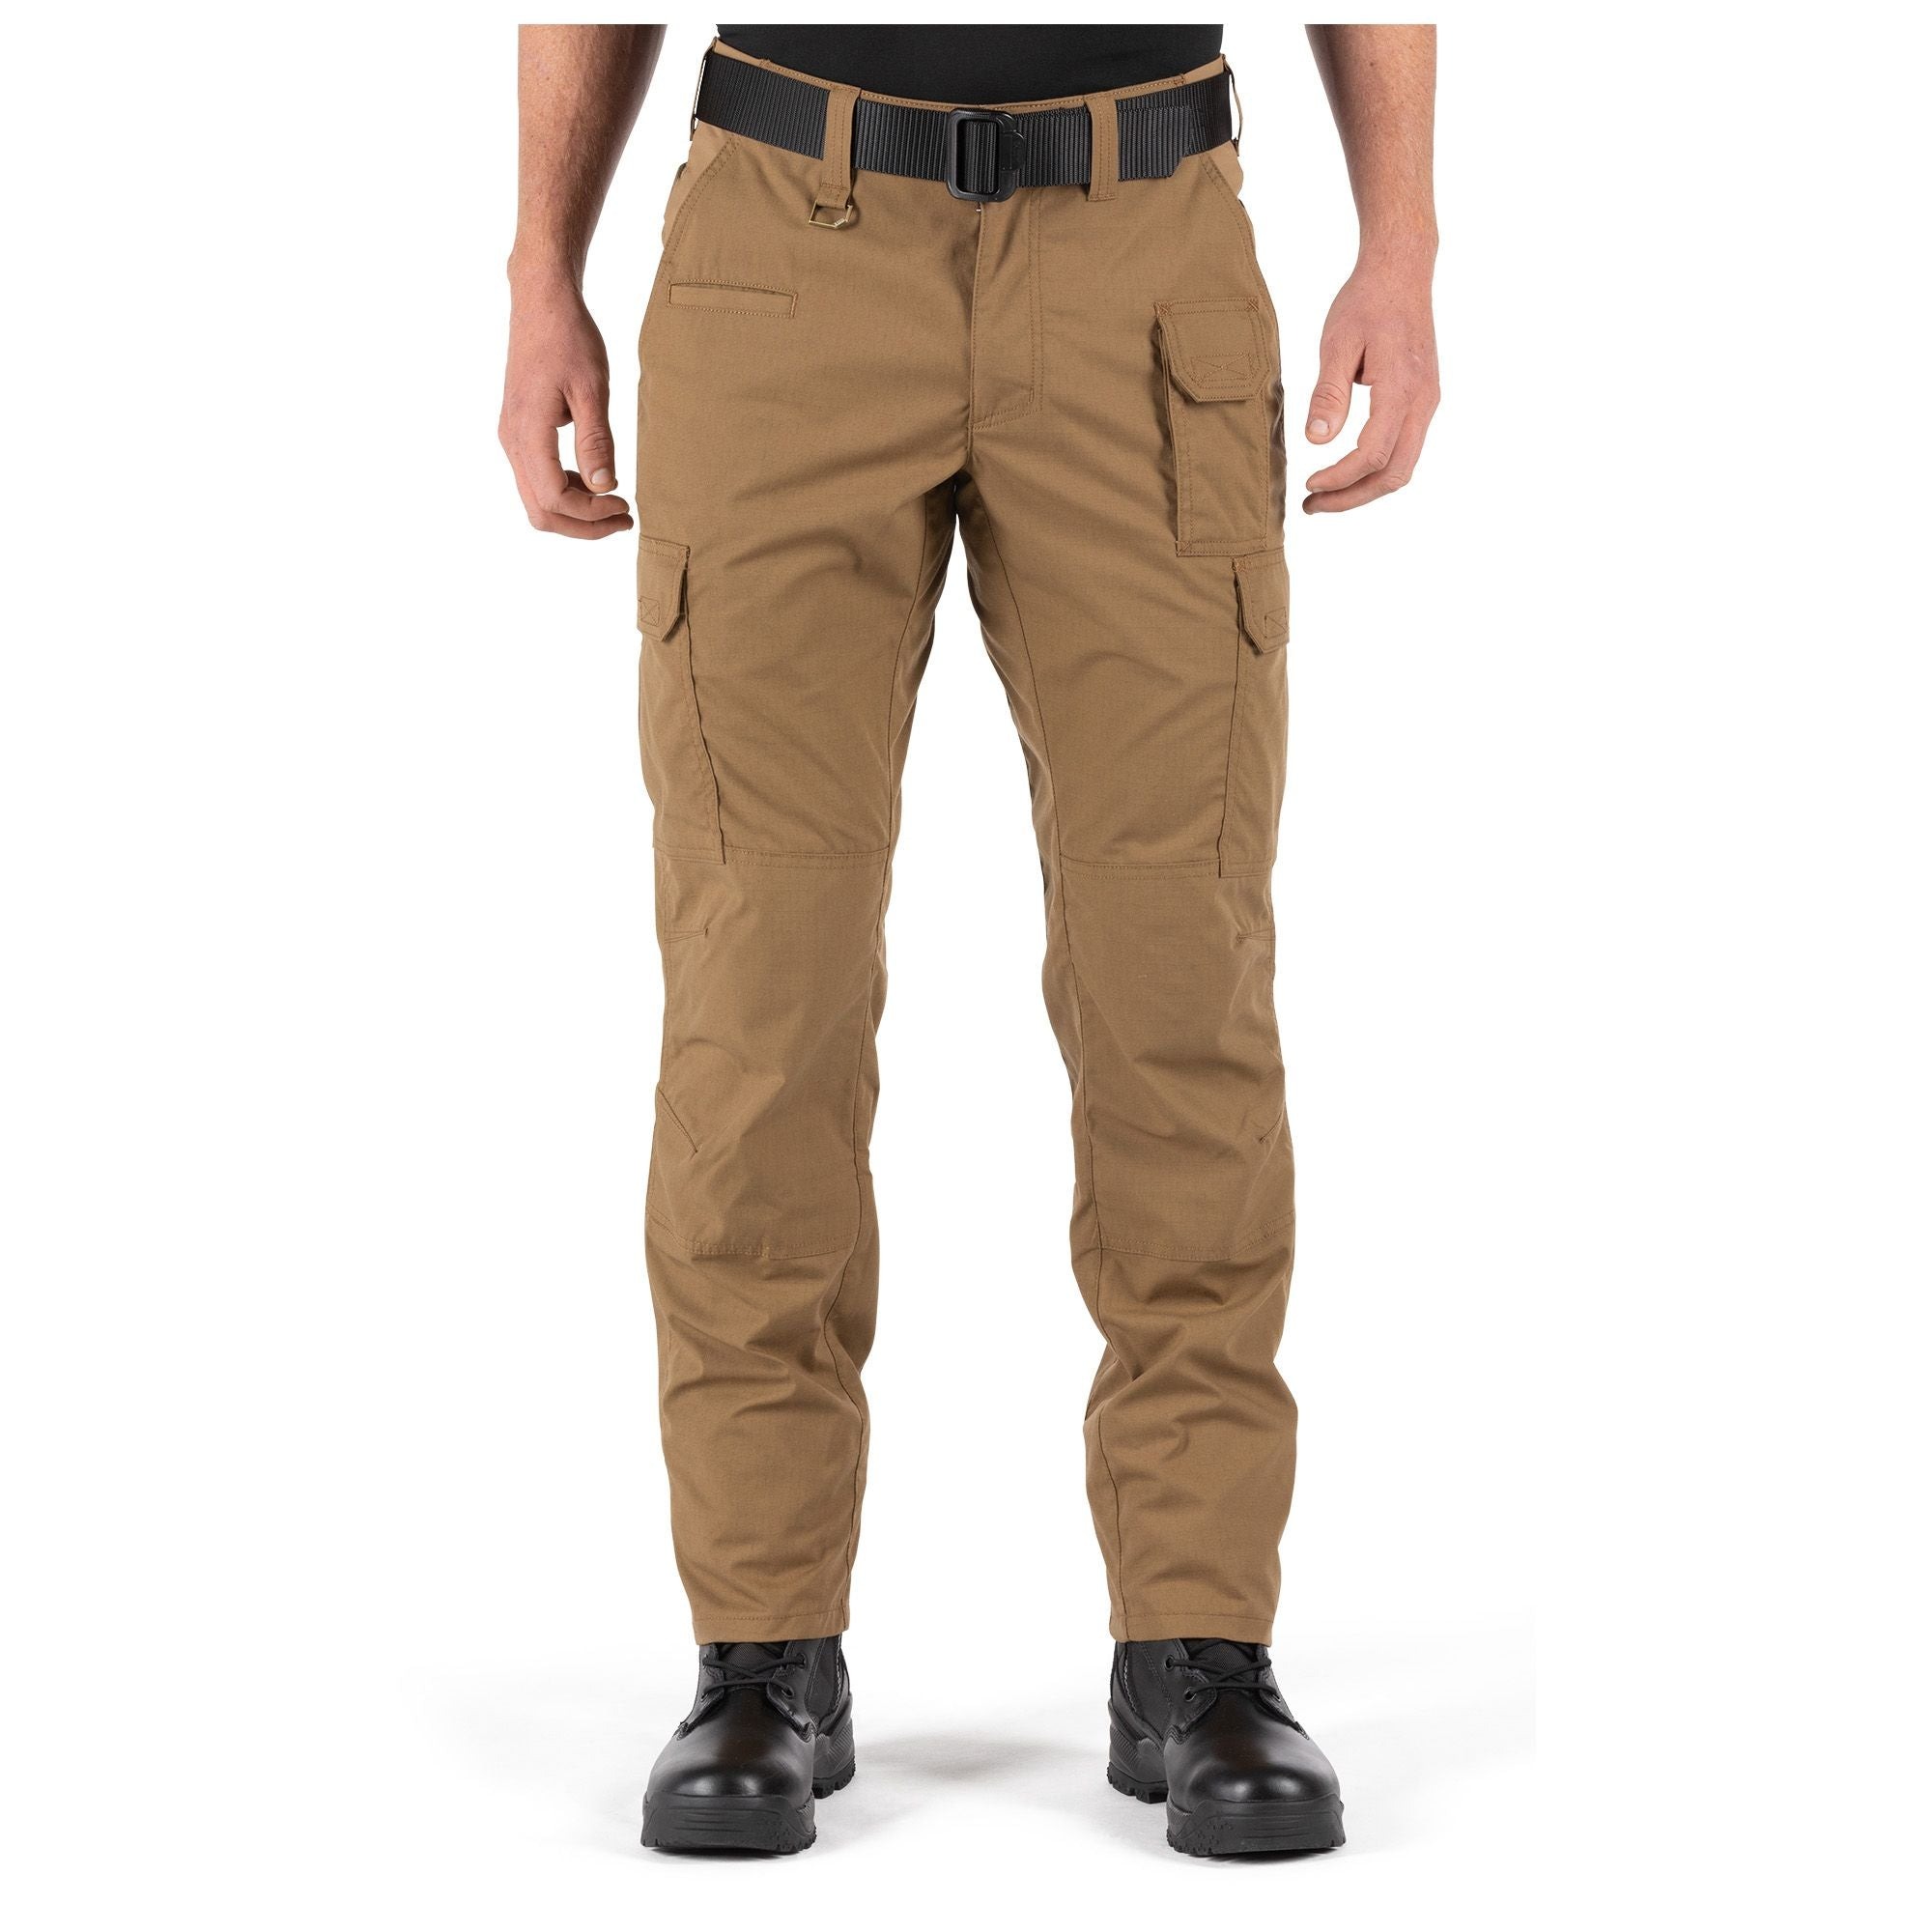 5.11 Tactical ABR™ Pro Pant - Khaki & Kangaroo - red-diamond-uniform-police-supply